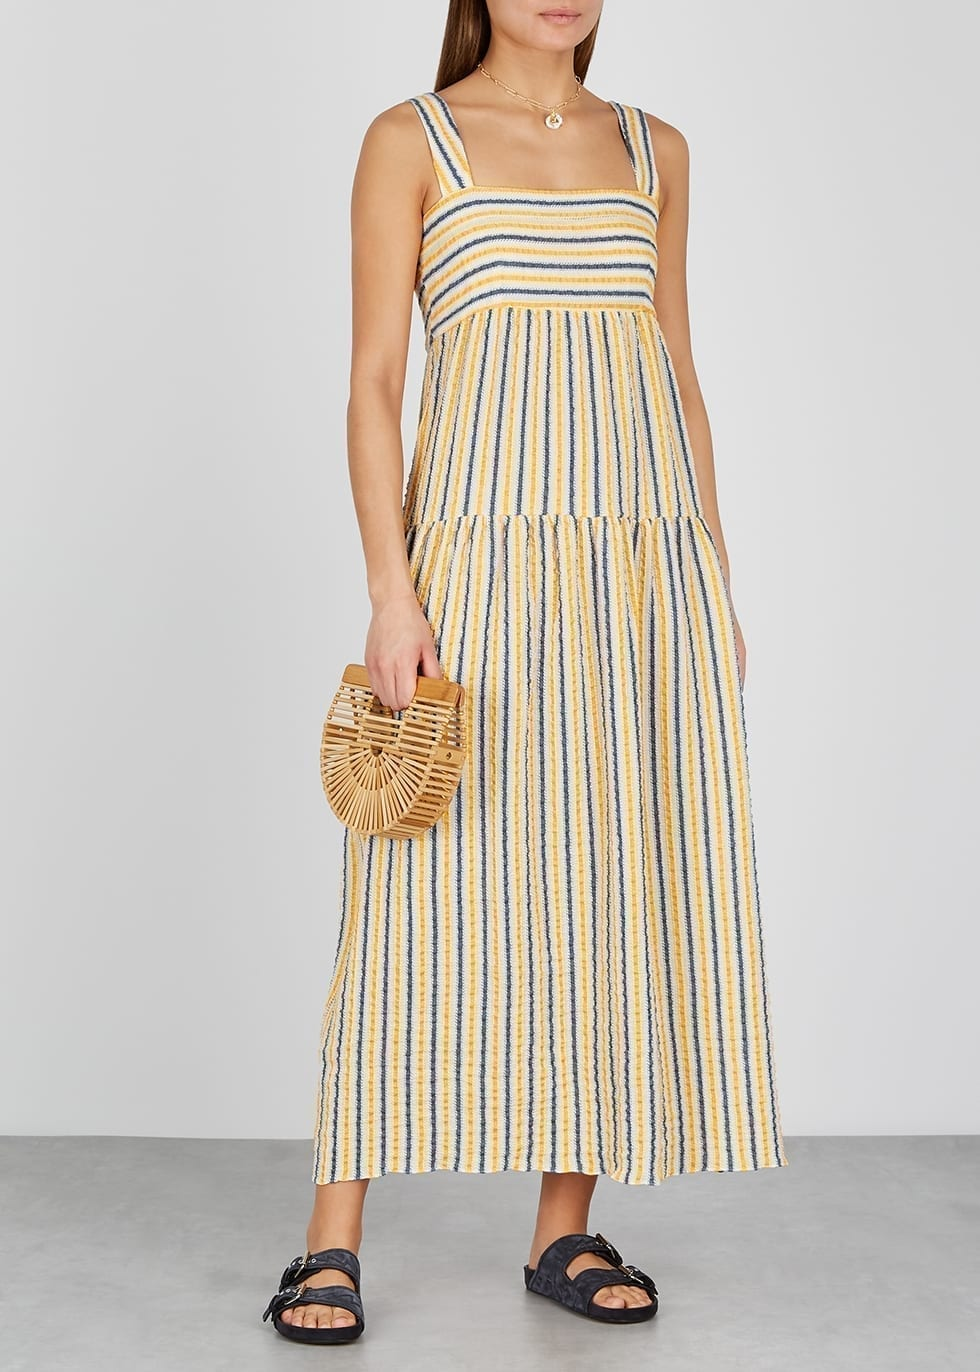 THREE GRACES Cosette Striped Seersucker Maxi Dress